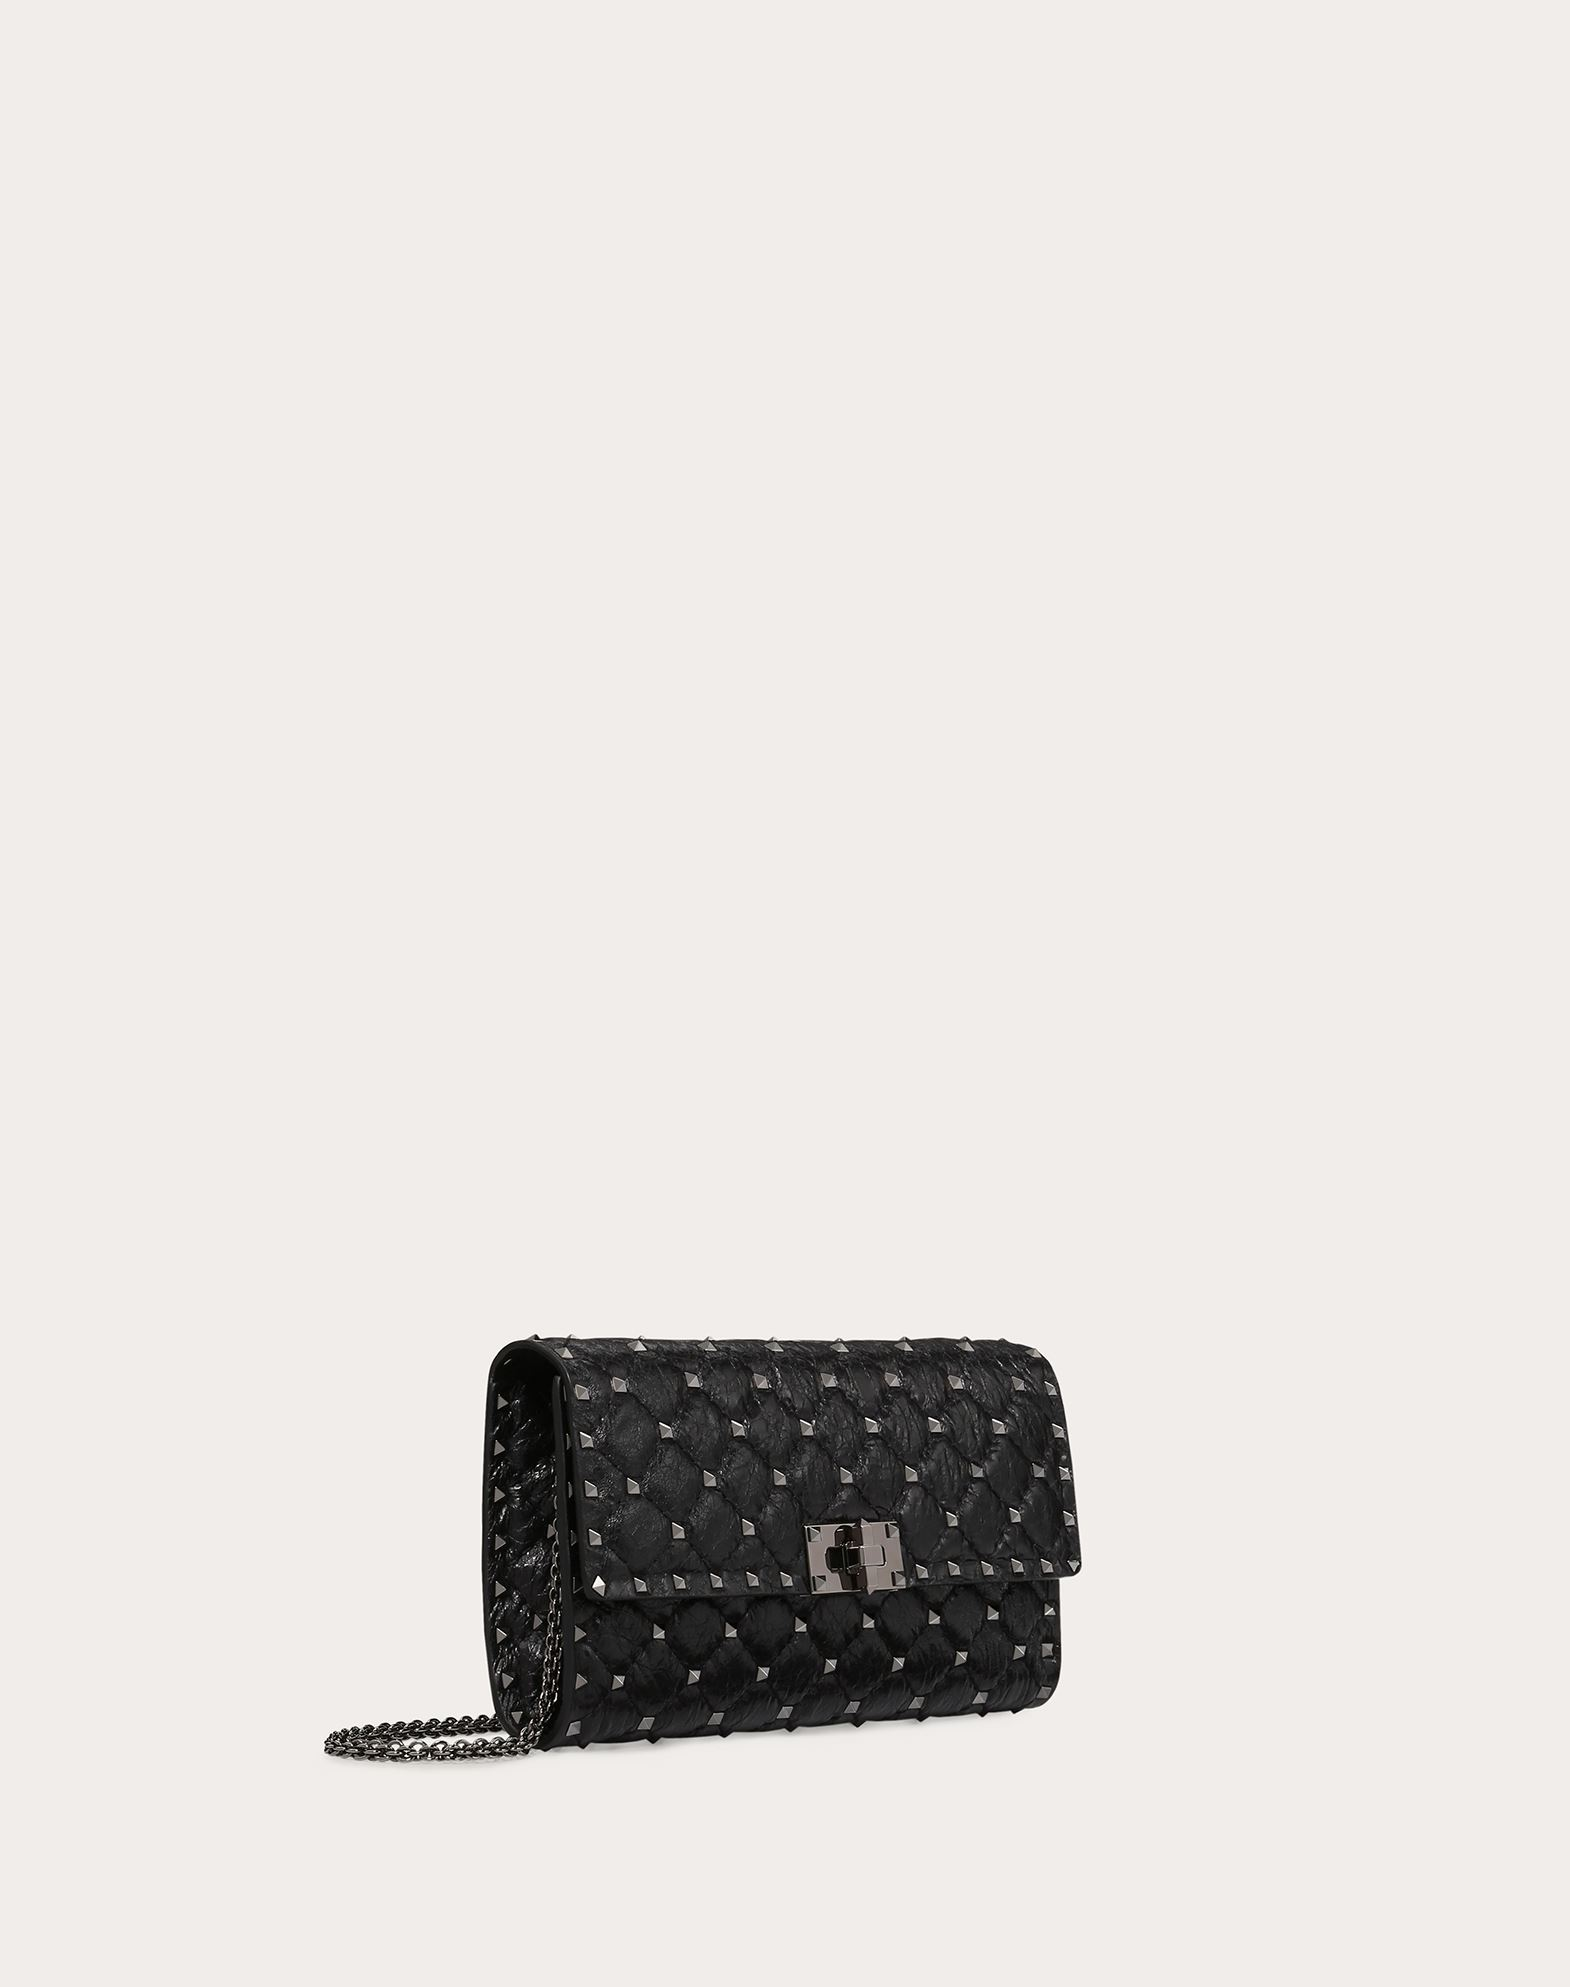 VALENTINO GARAVANI Rockstud Spike Chain Bag Shoulder bag D r